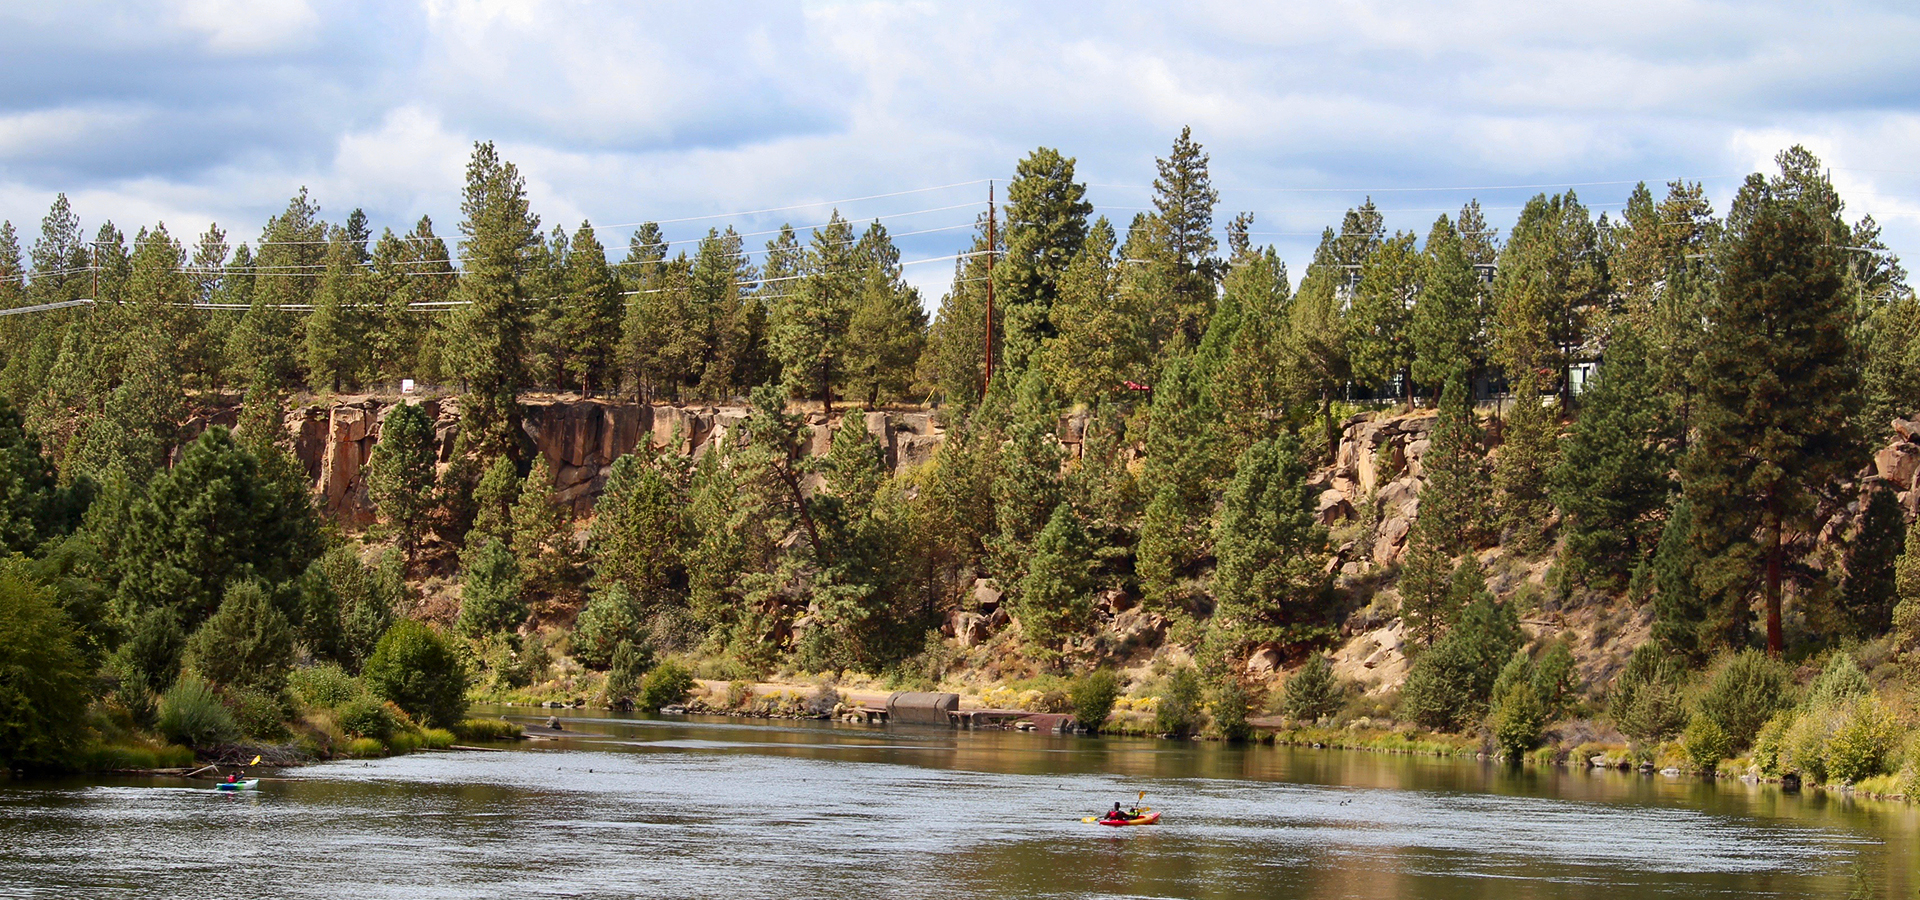 Image of kayakers in the Deschutes River along Farewell Bend Park and the Deschutes River Trail.